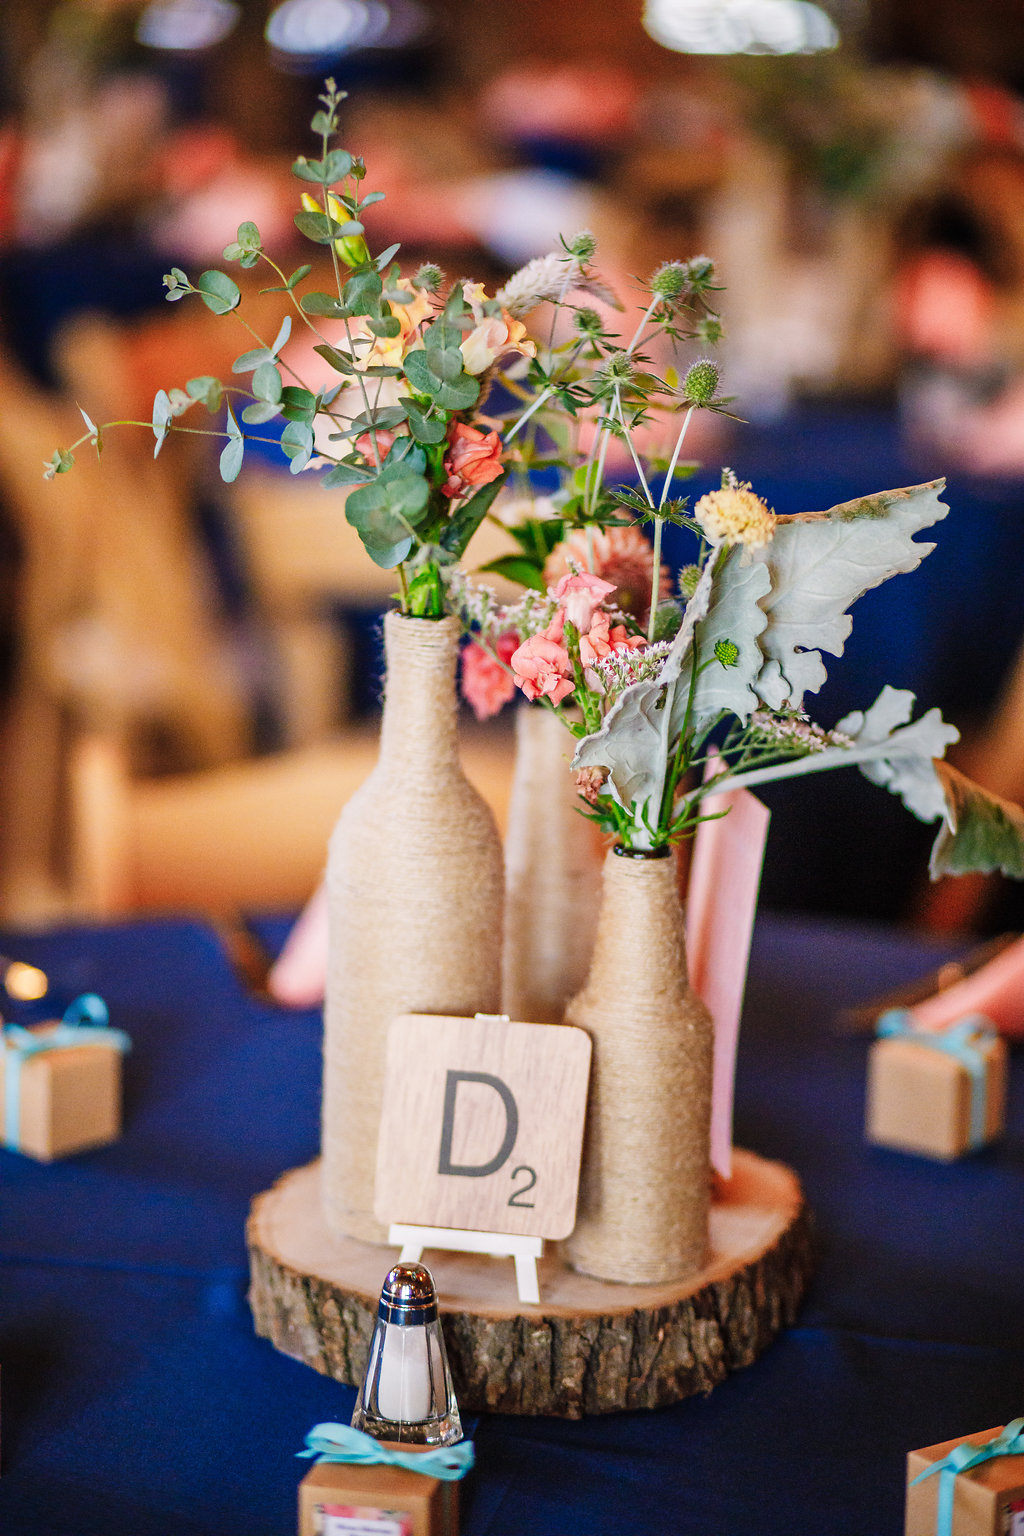 brielle-davis-events-photography-by-brea-linganore-winery-james-sarah-wedding-rustic-centerpieces.jpg